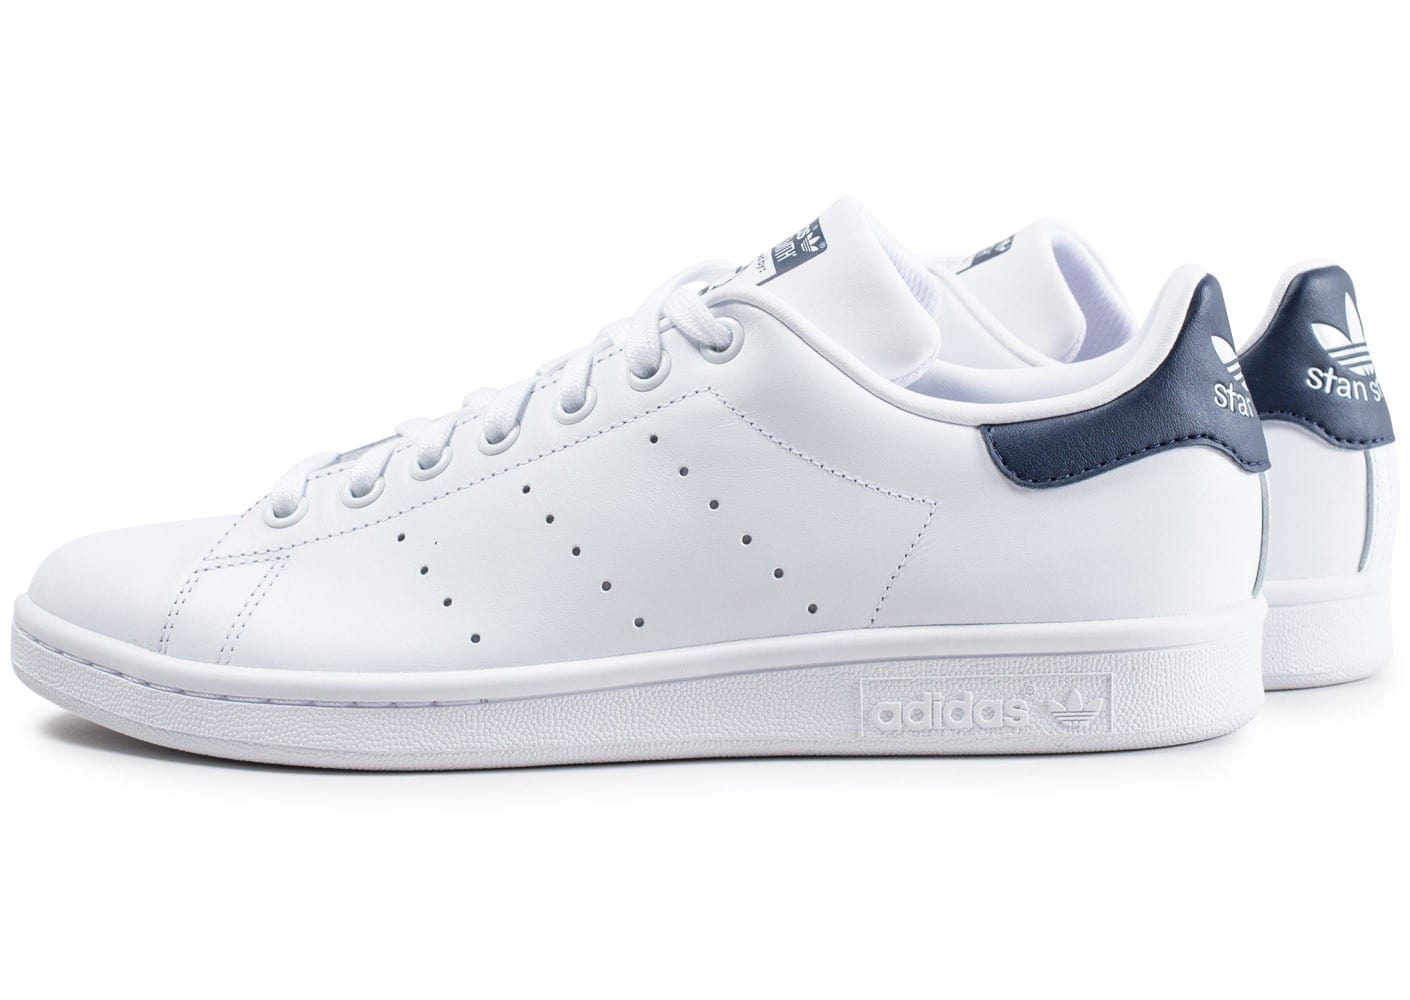 adidas Stan Smith blanche et bleue Chaussures Baskets